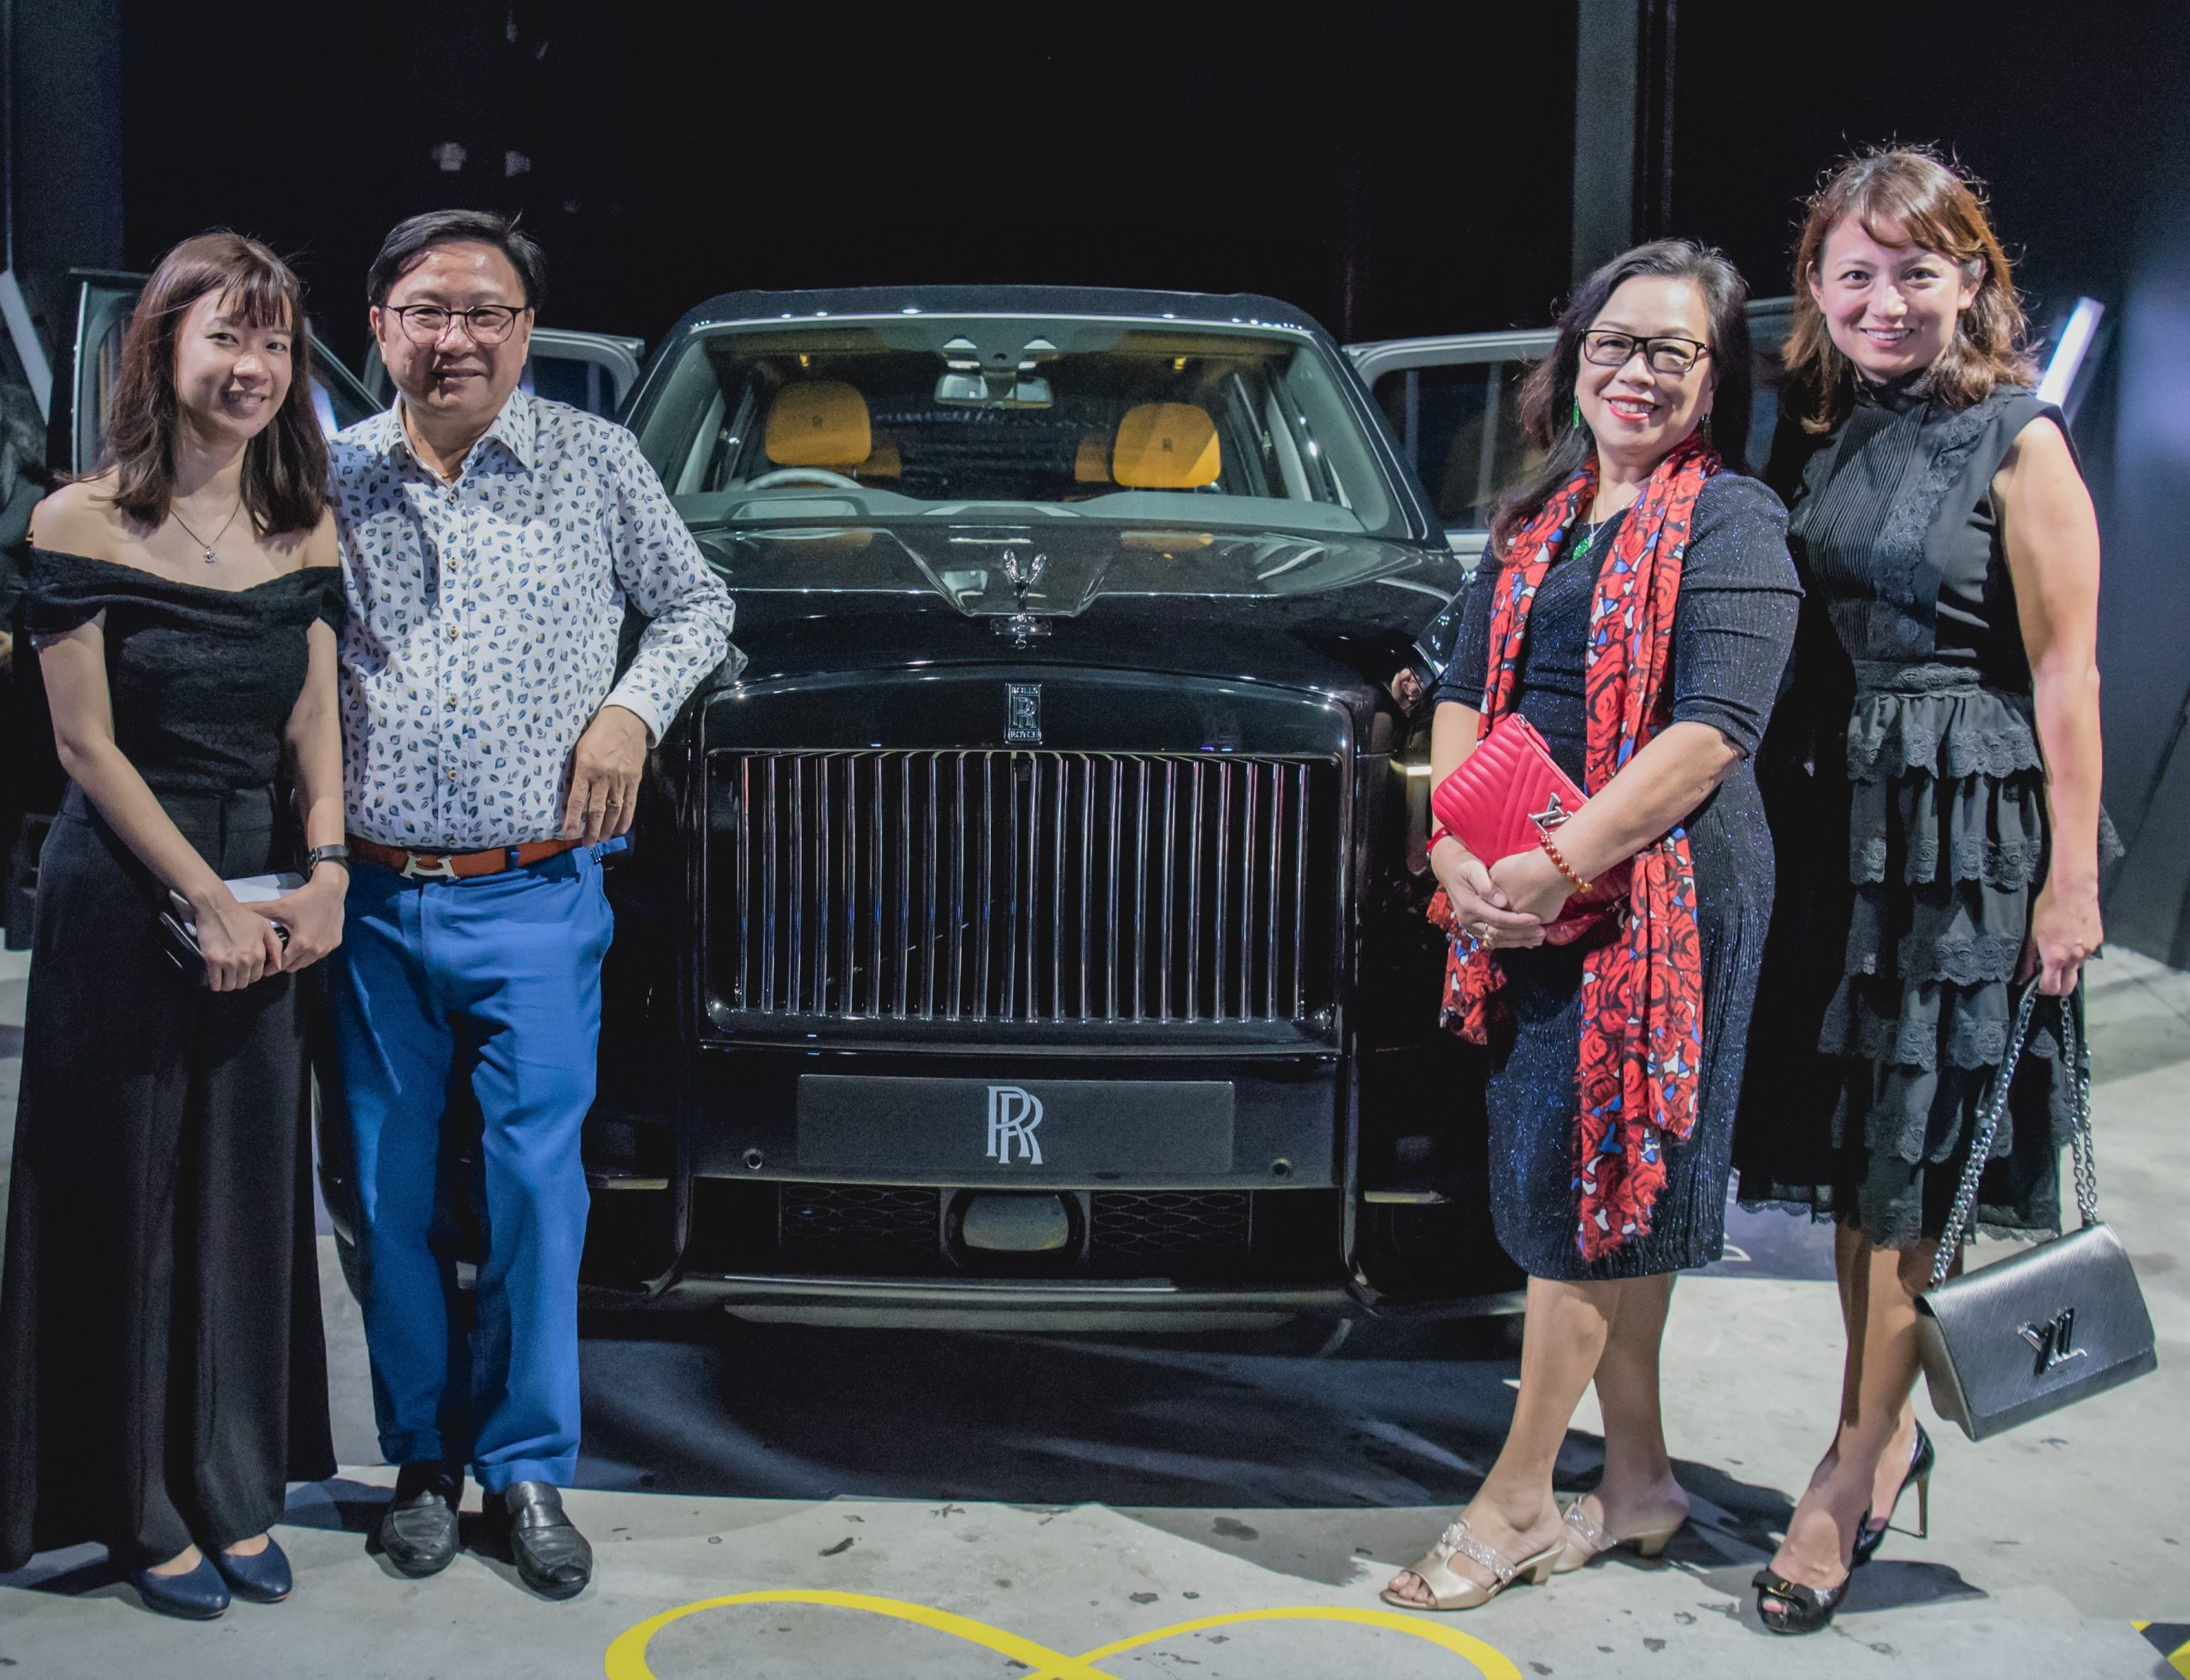 (From left to right) Rolls-Royce guests Ms Ashley Yeo, Mr Frankie Choo, Mrs Alice Choo and Mrs Sally Neo